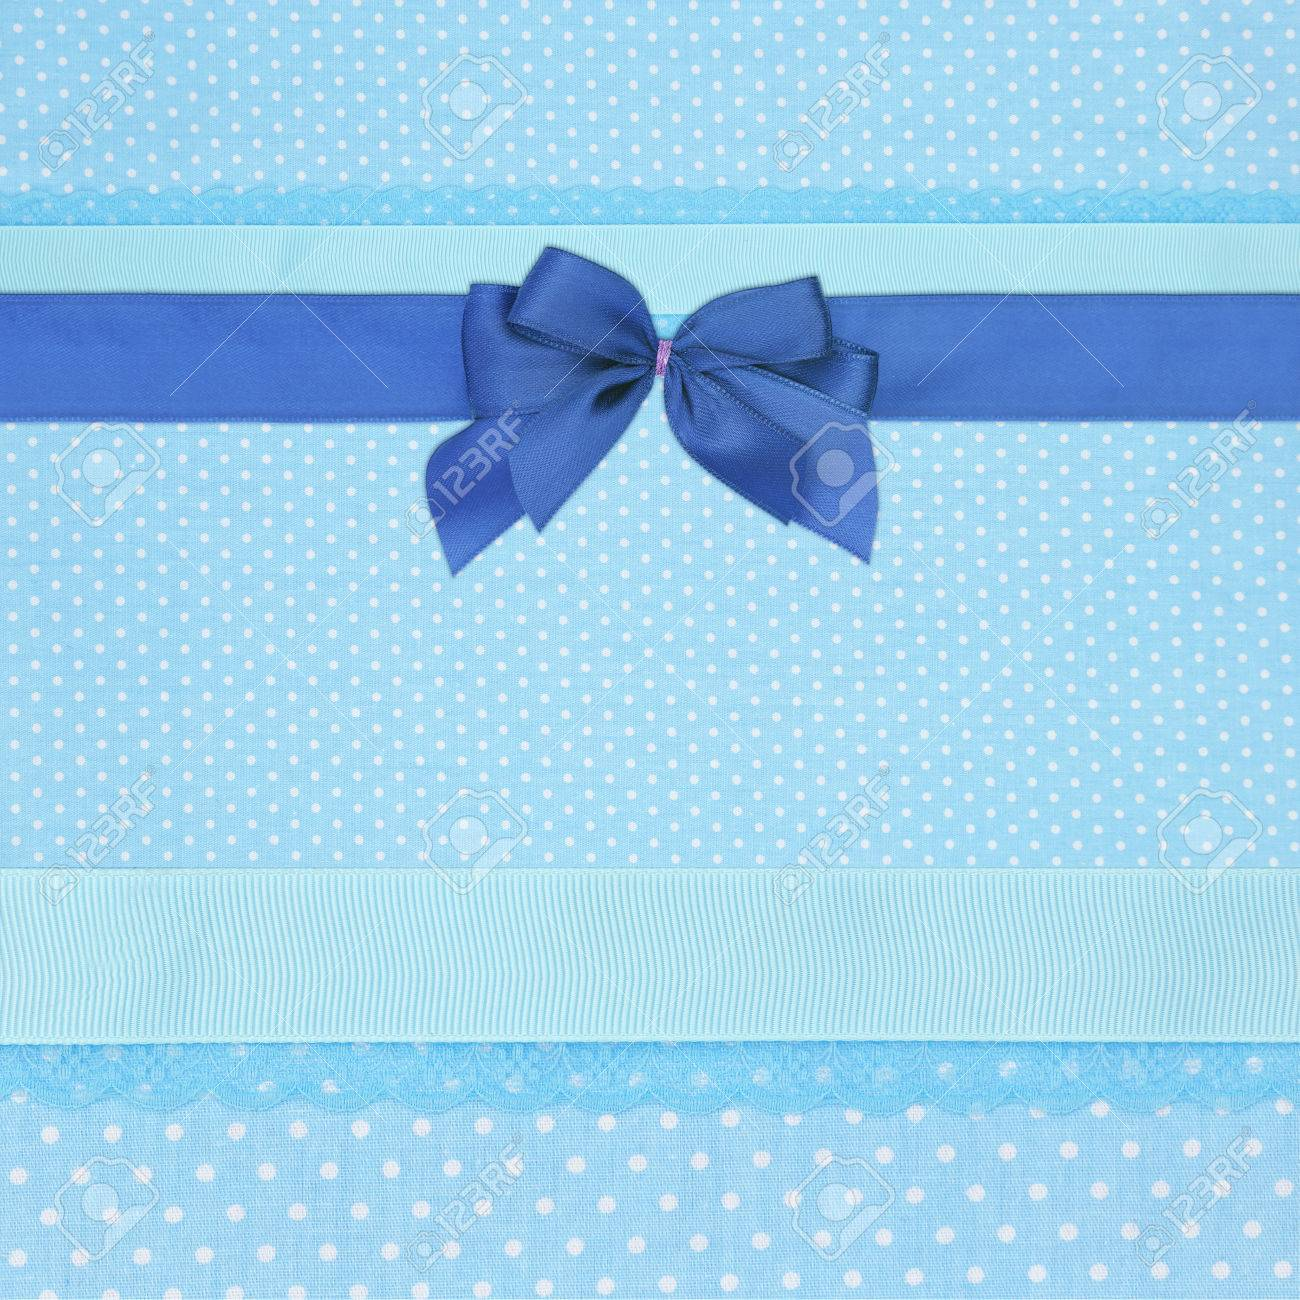 Blue Retro Polka Dot Textile Background With Ribbons And Bow Stock 1300x1300